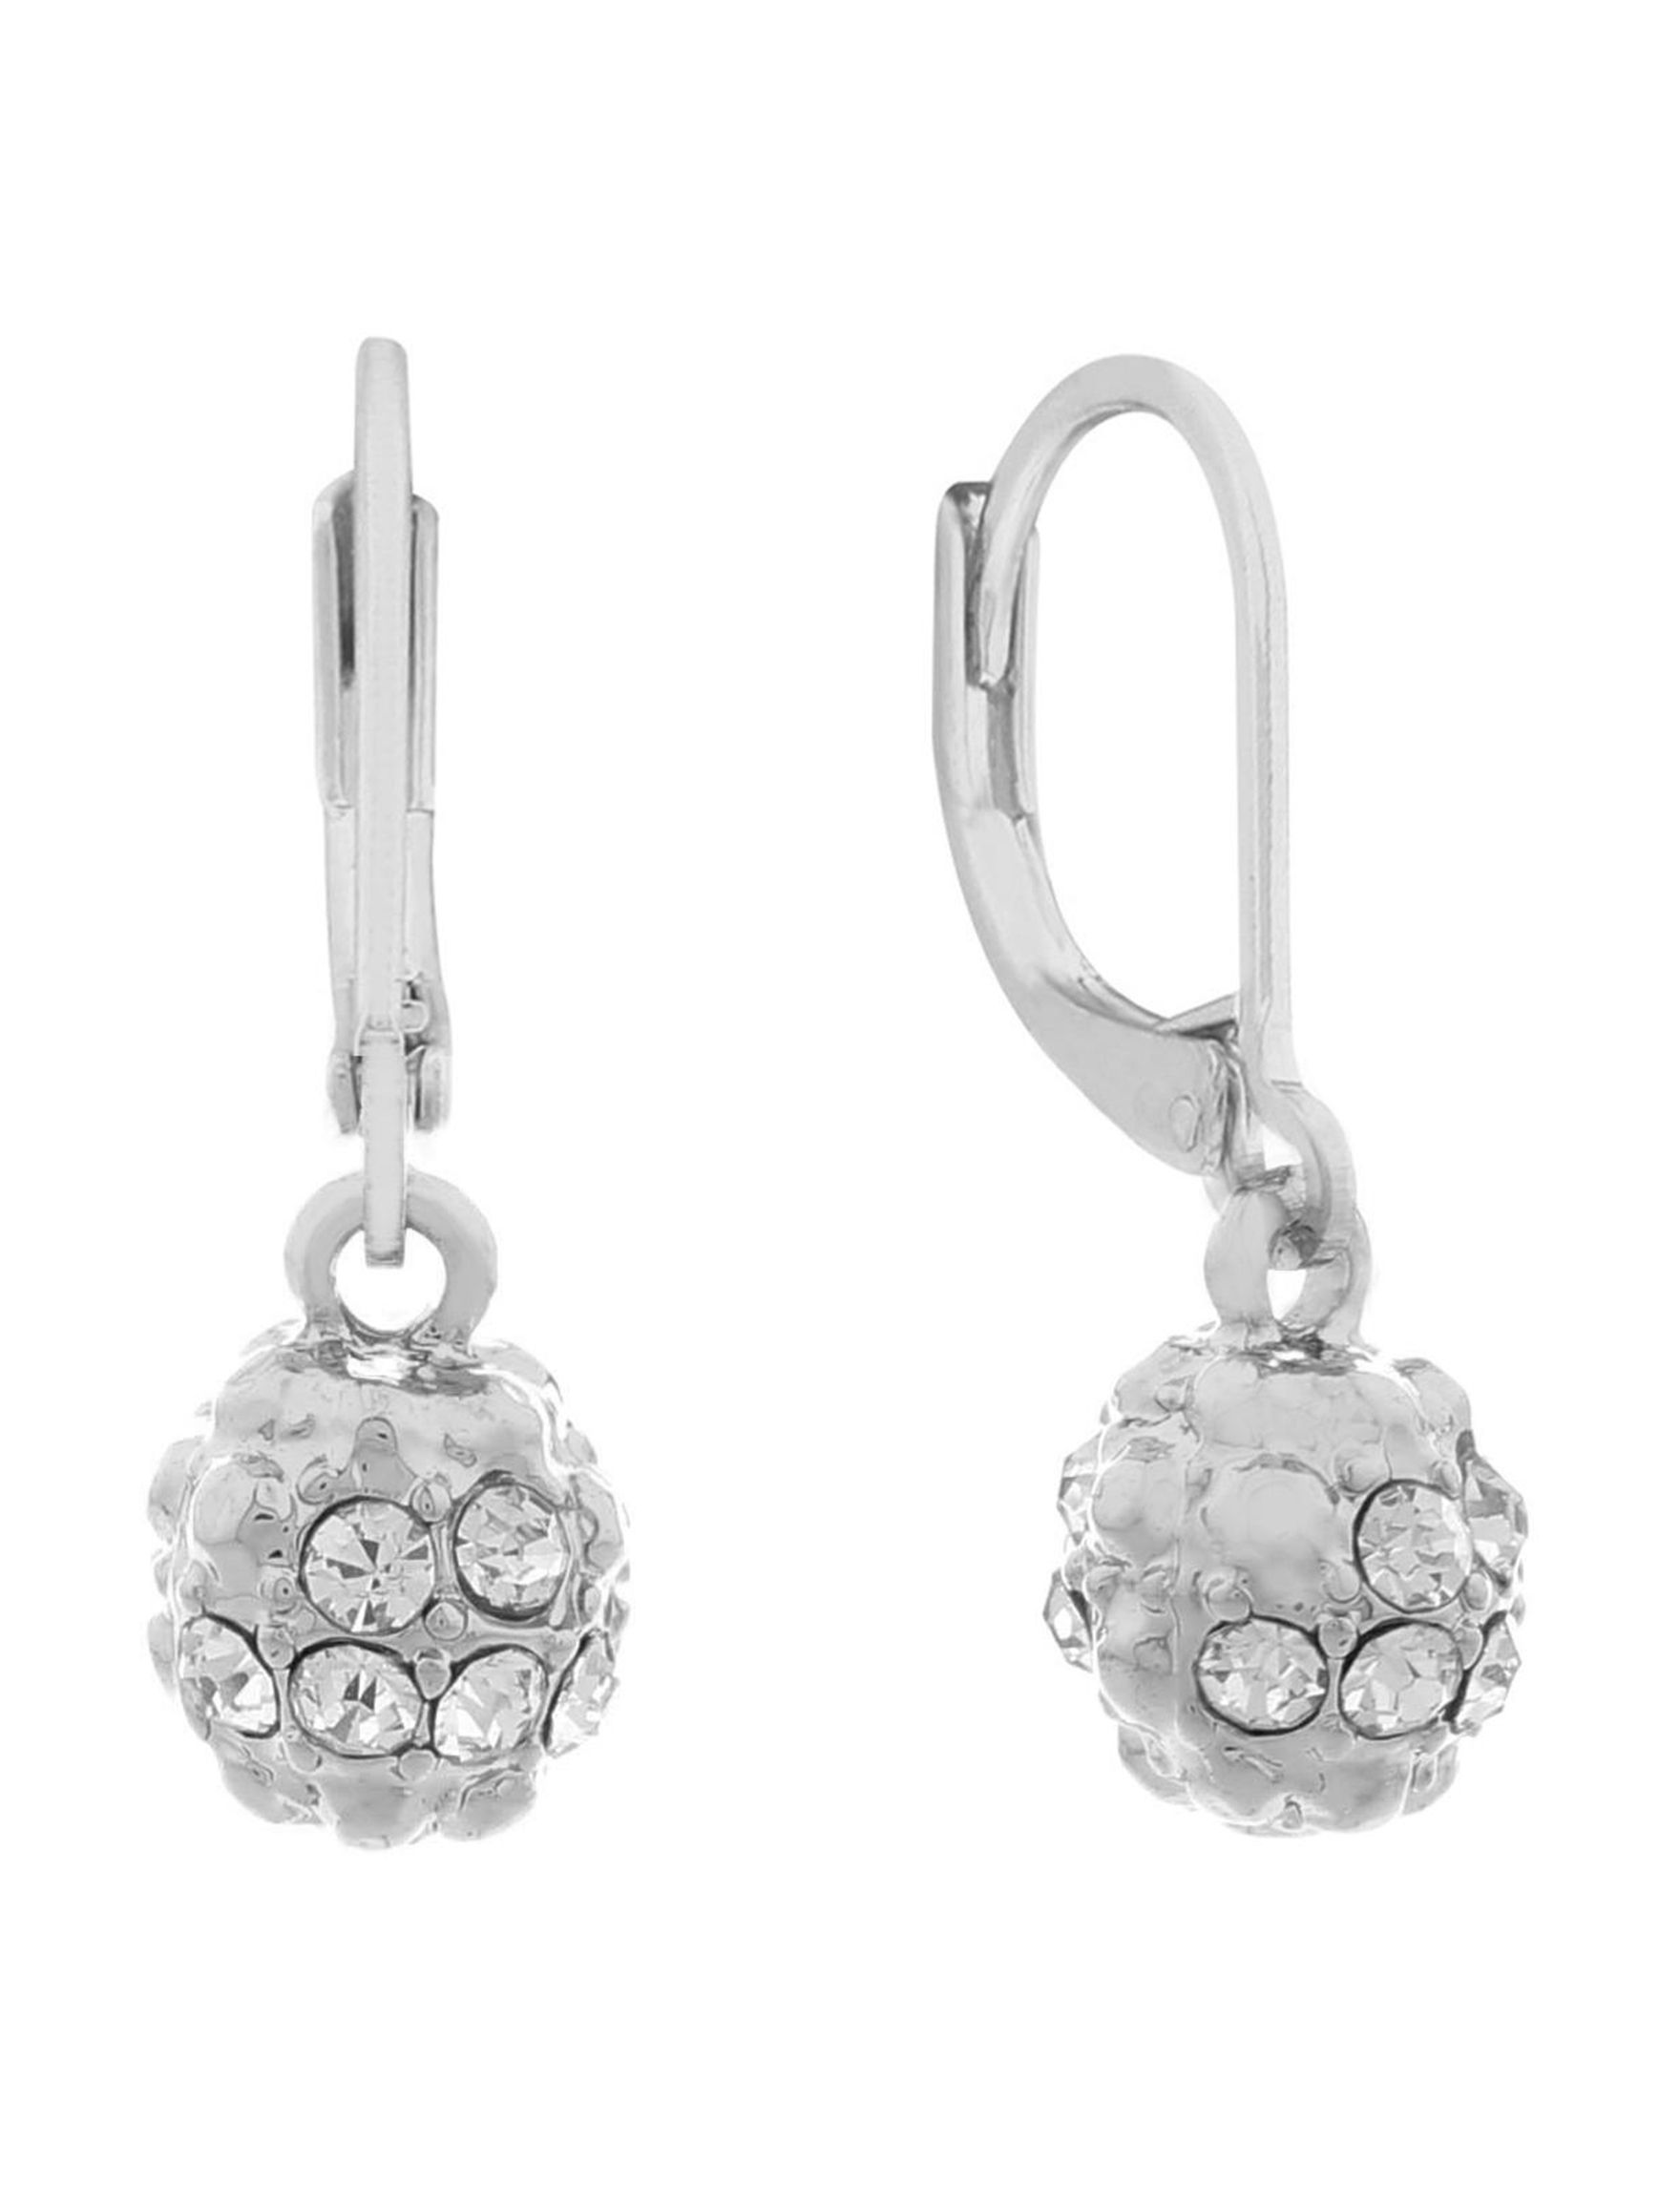 Gloria Vanderbilt Silver / Crystal Drops Earrings Fashion Jewelry